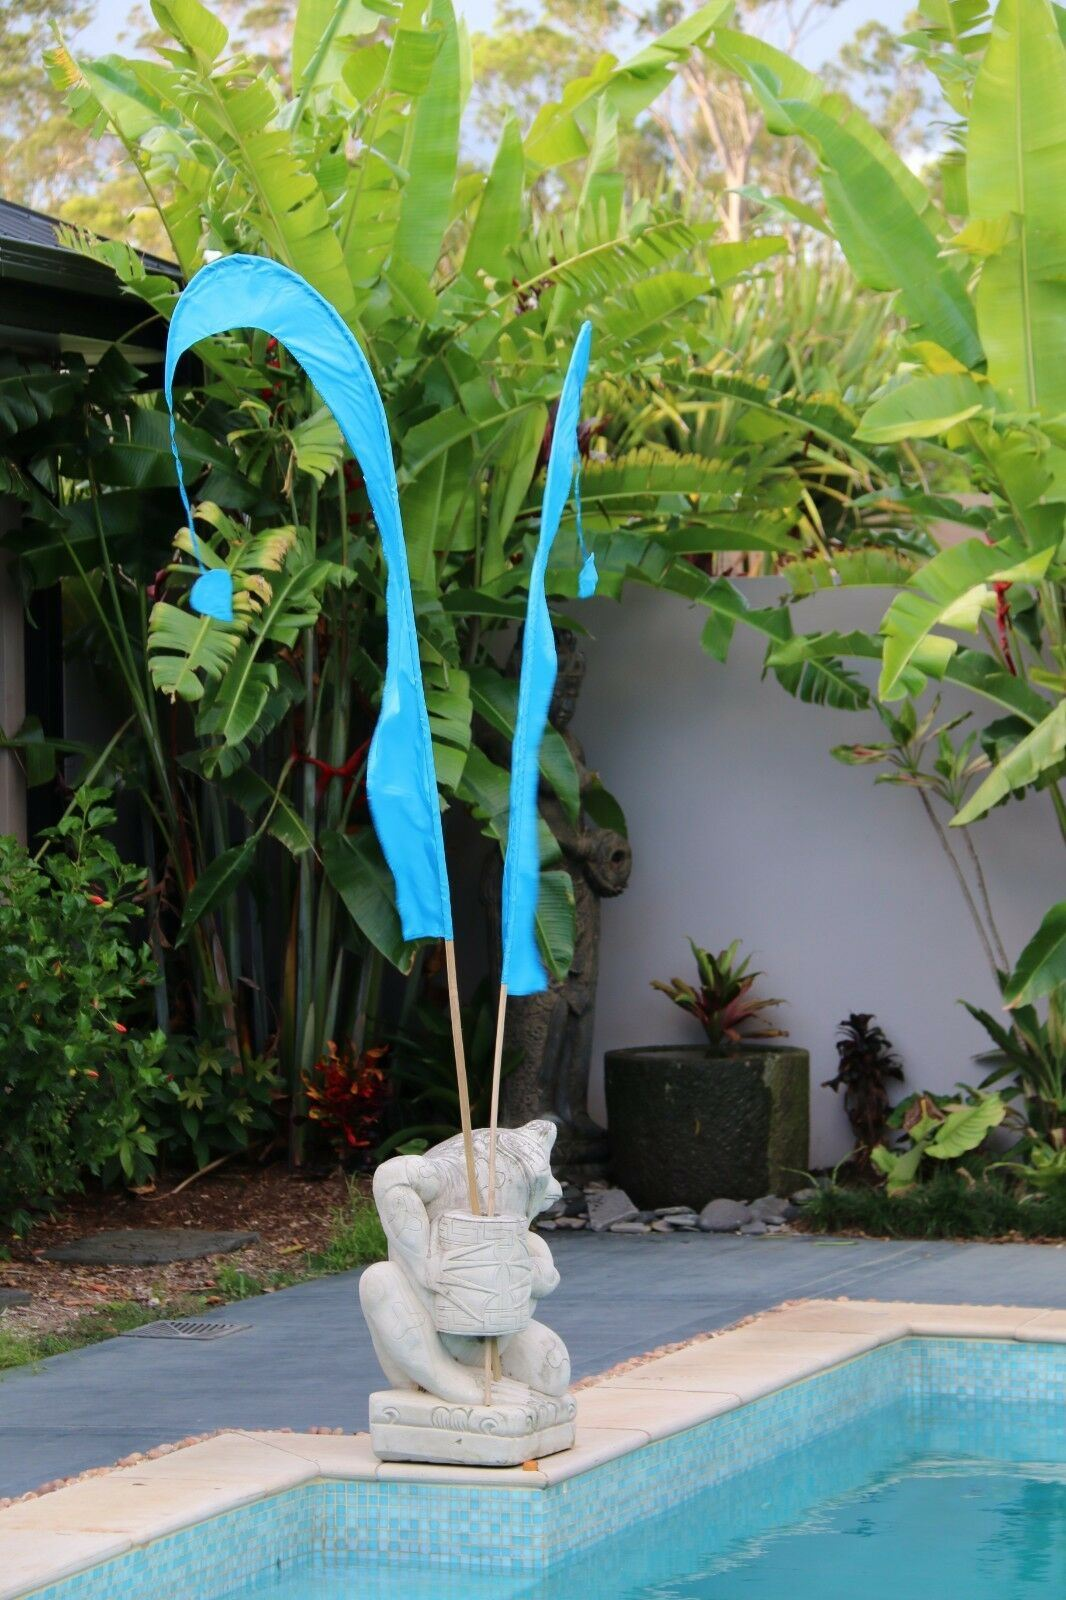 NEW Medium Bali Umbul Flags with Pole - Bali Flag Decor 11 Colours Wedding Flags